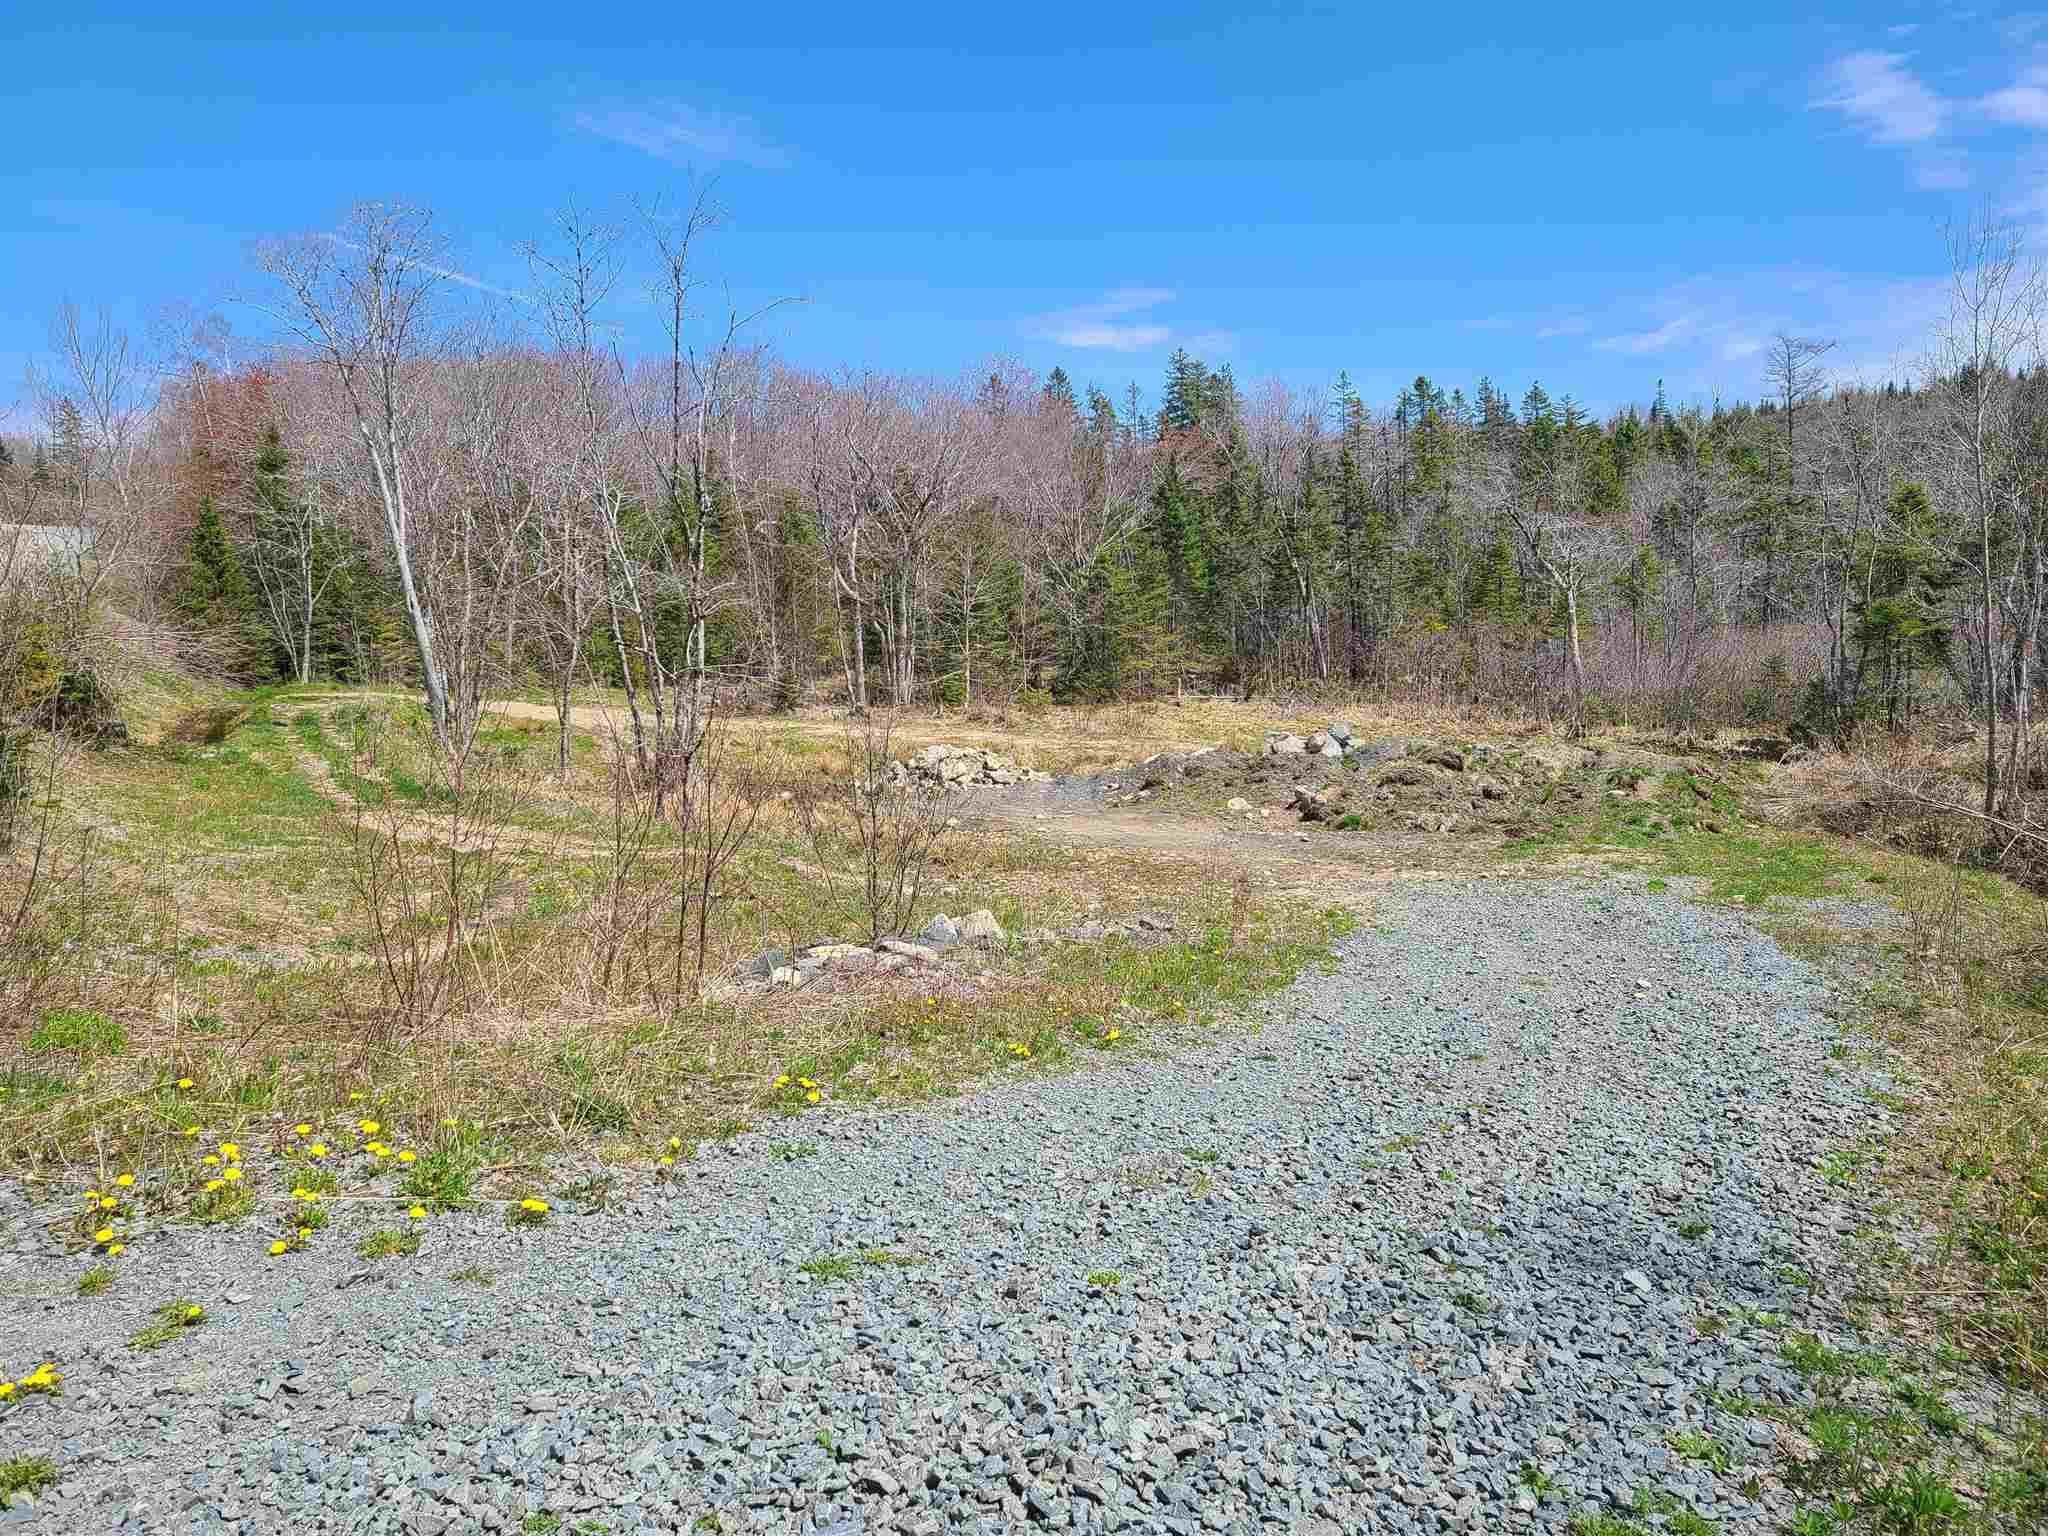 Main Photo: 96-1 Sunrise Lane in Mount Uniacke: 105-East Hants/Colchester West Vacant Land for sale (Halifax-Dartmouth)  : MLS®# 202110687